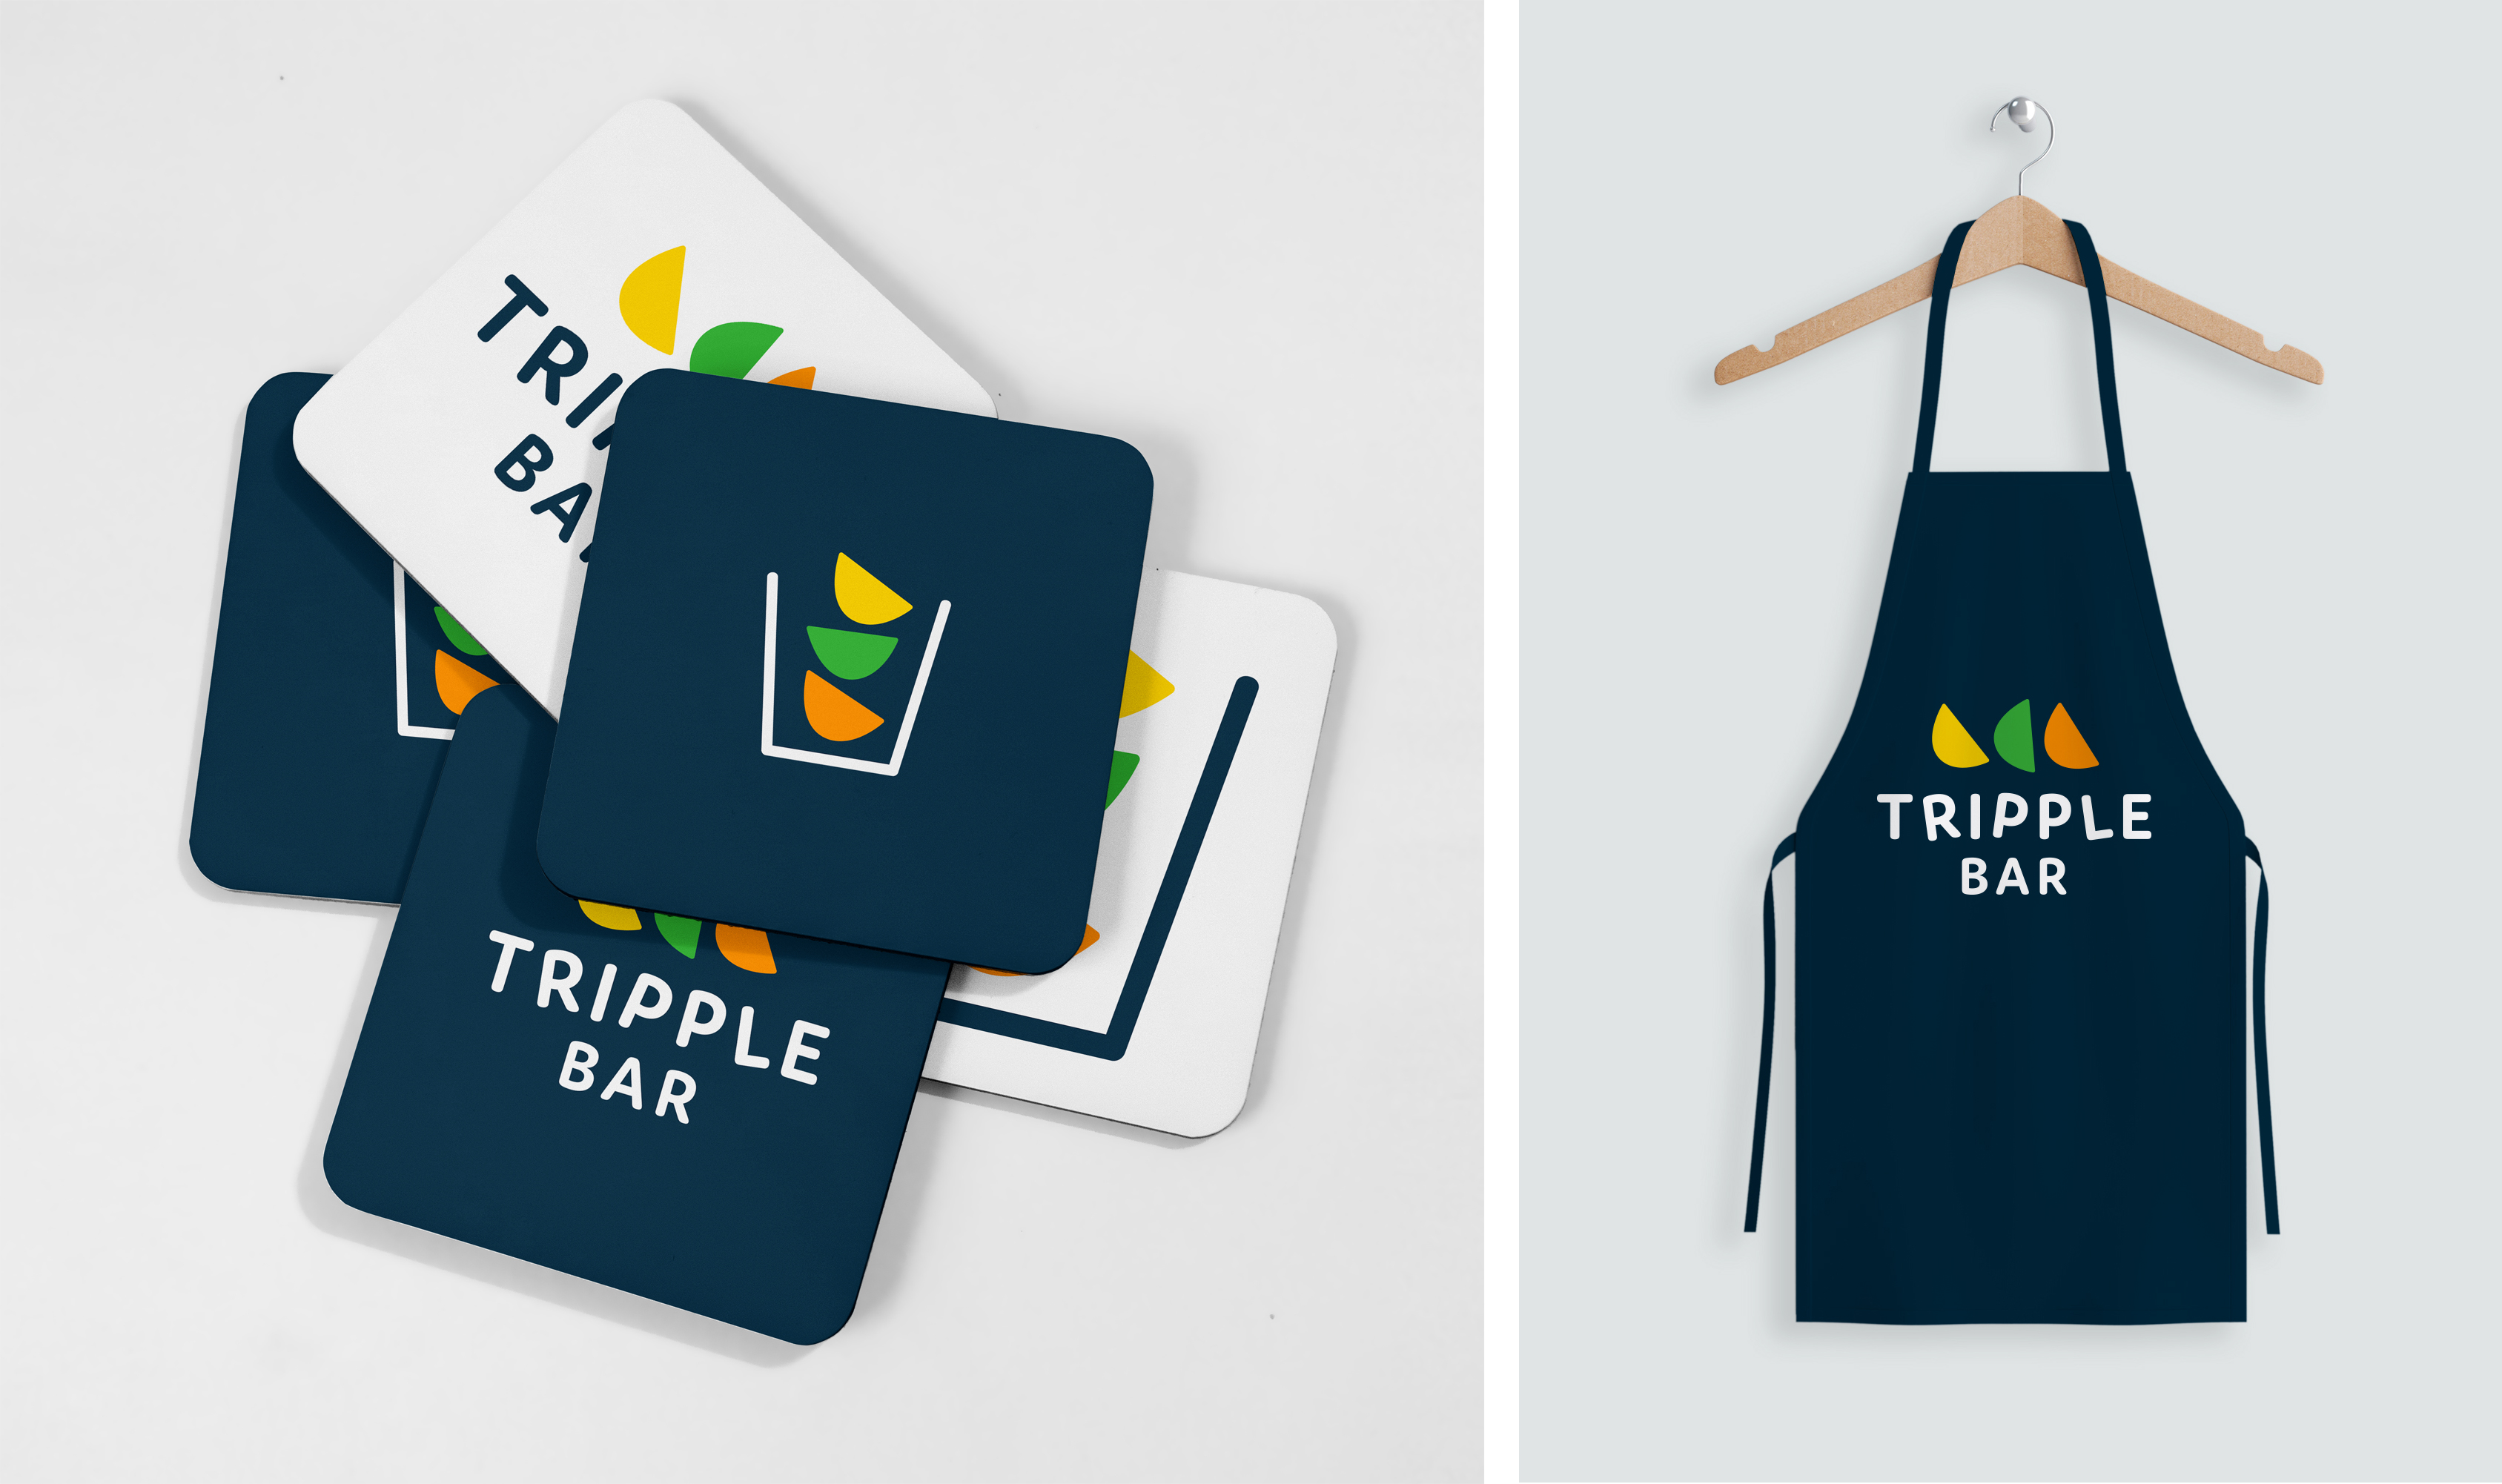 Tripple Bar logo design